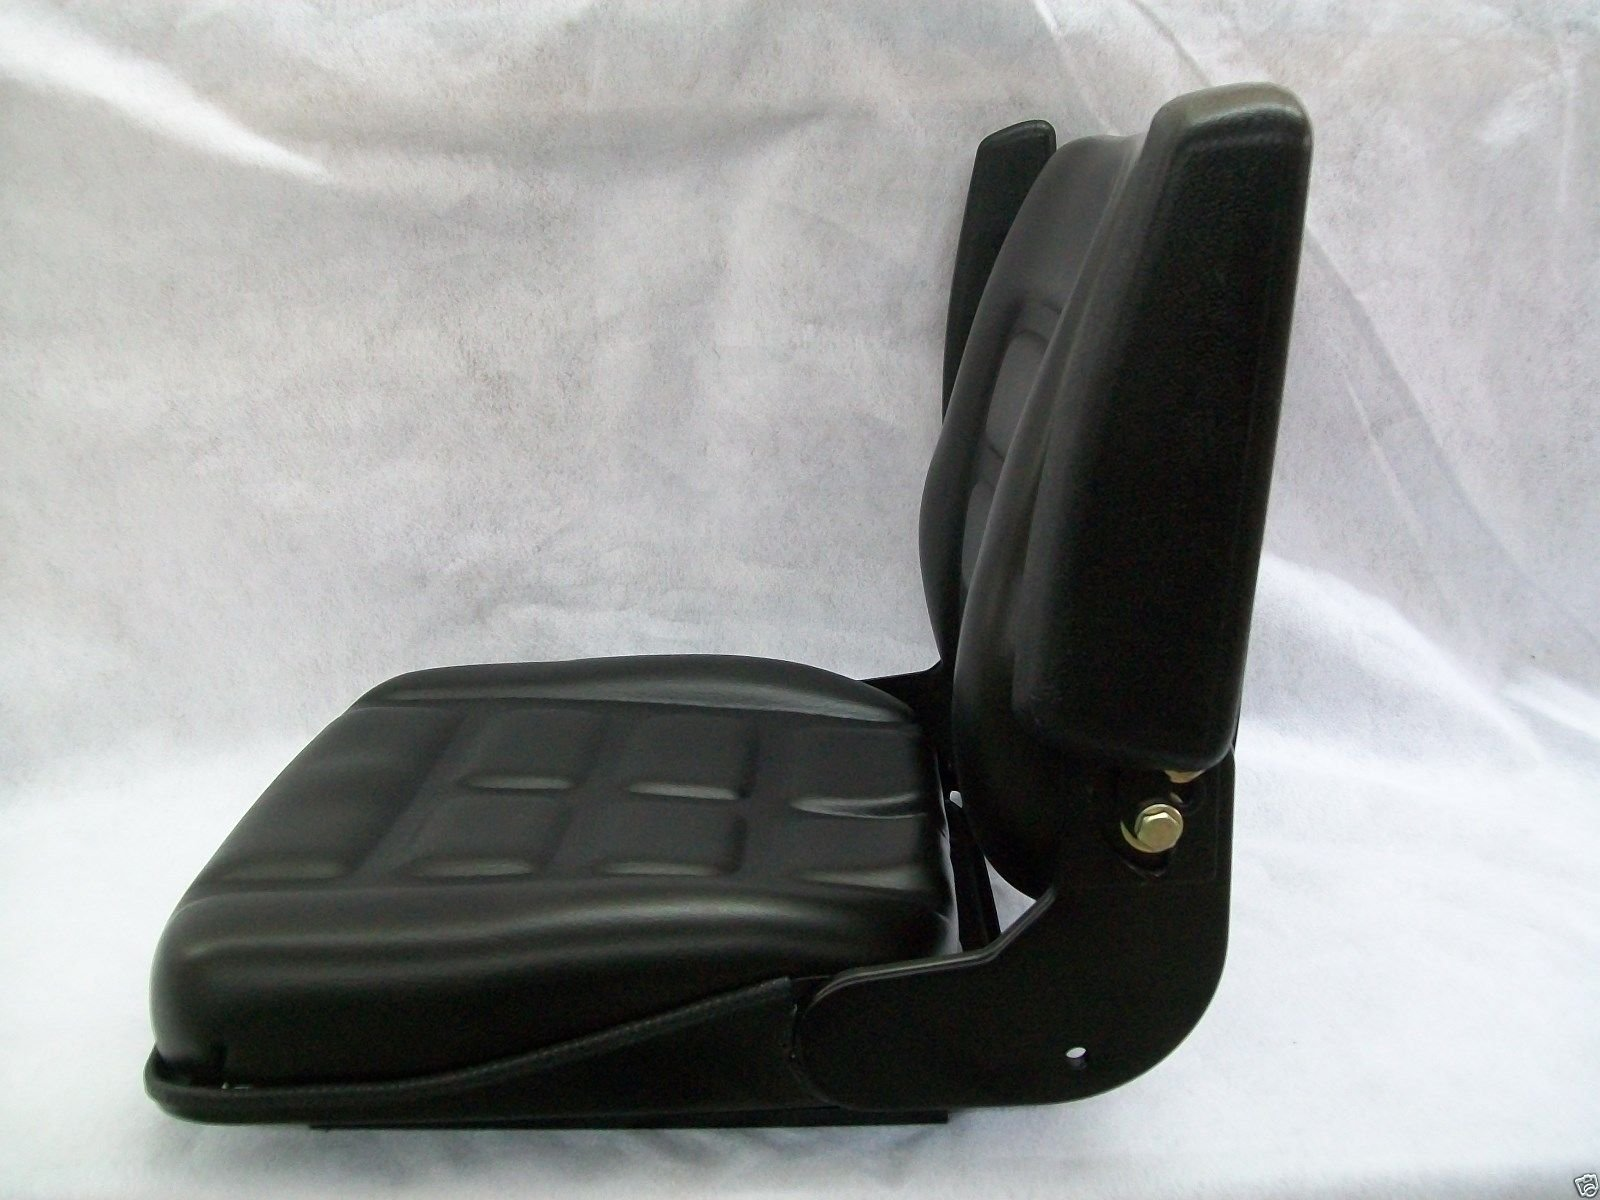 Concentric Universal Seat with Arm Rests for Industrial, Construction,Farm Turf #BJ by Concentric